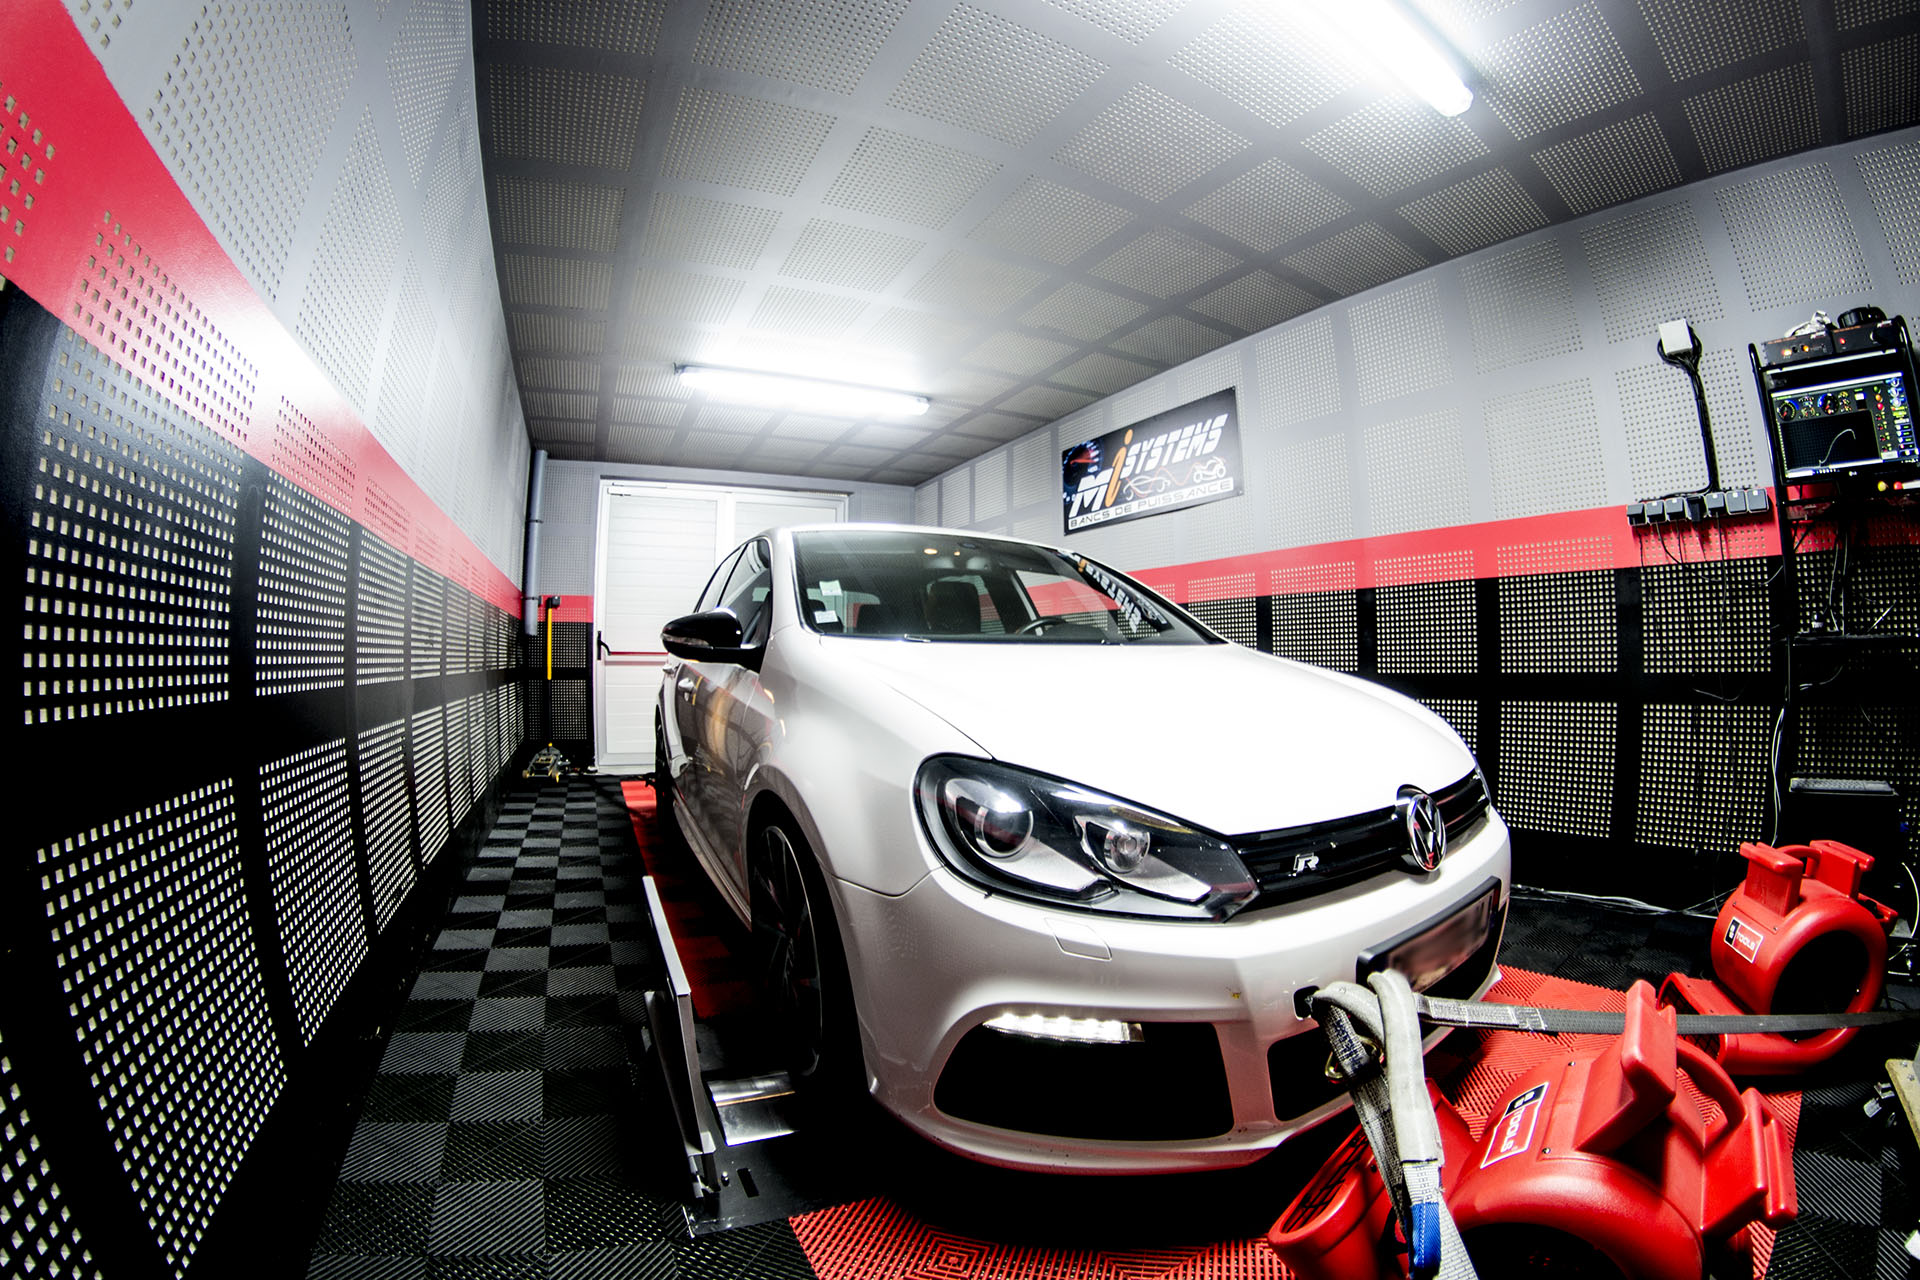 Golf 6 R Stage 1 SP98 à Rouen de 270 à 310cv | Digiservices Normandie